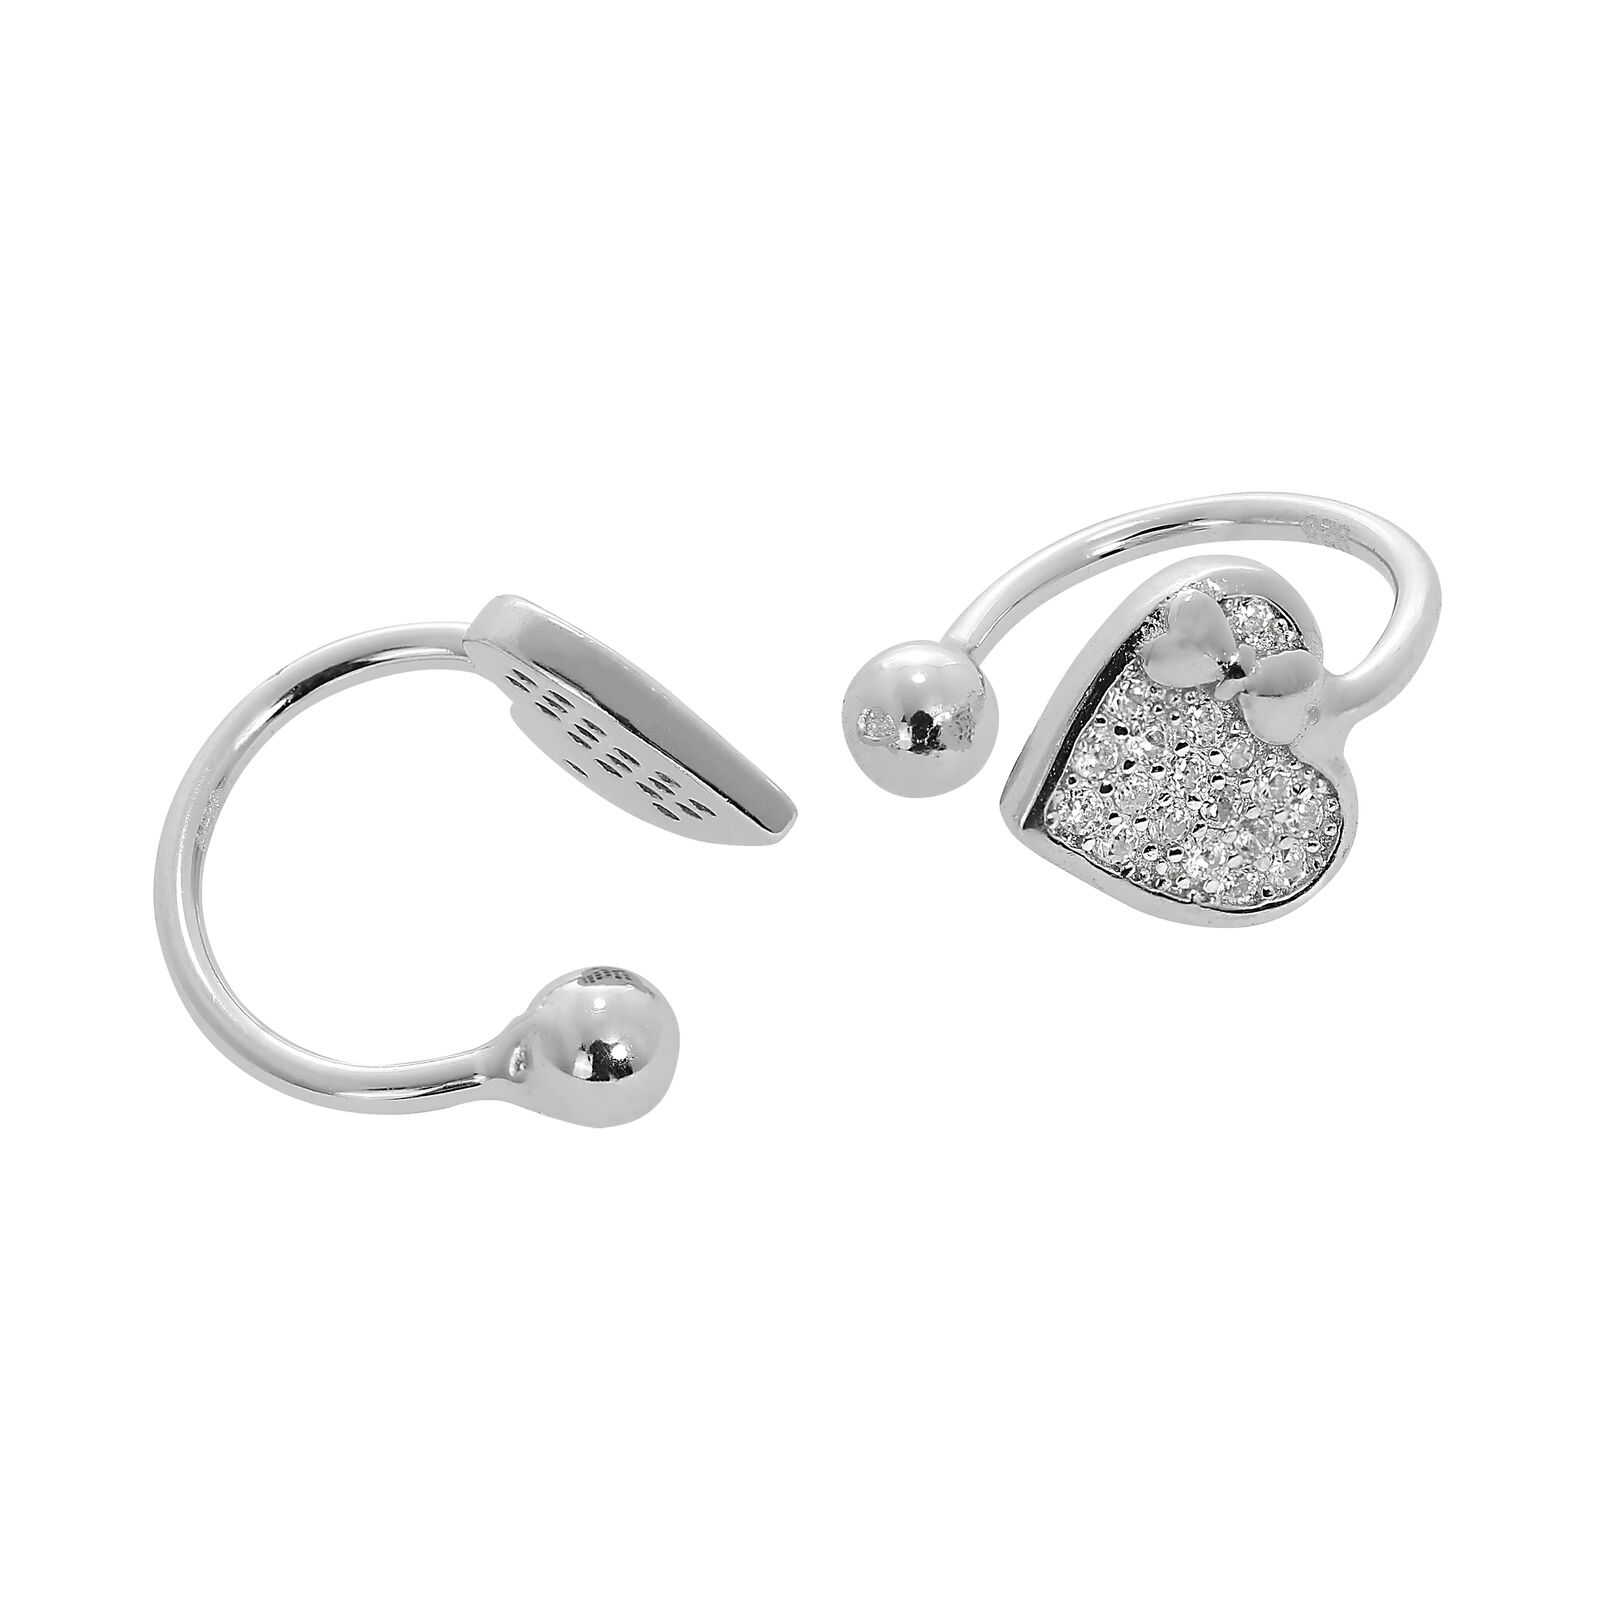 Real 925 Sterling Silver Circle Pull Through Earrings